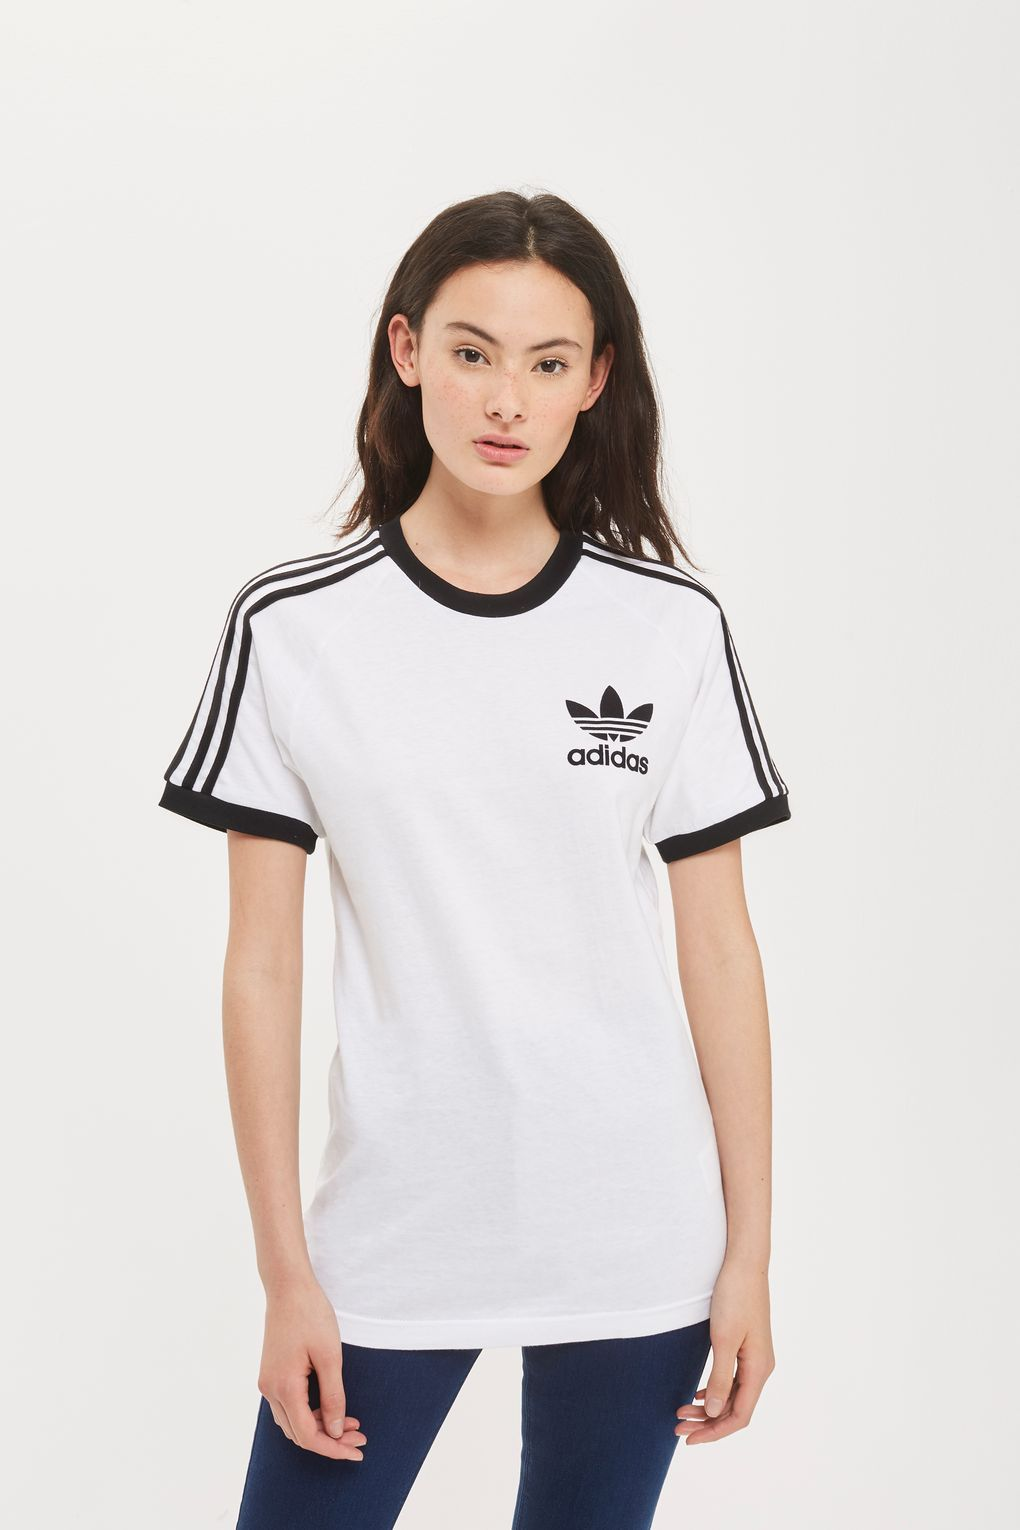 California 3 Stripe T Shirt by Adidas Originals | adidas in